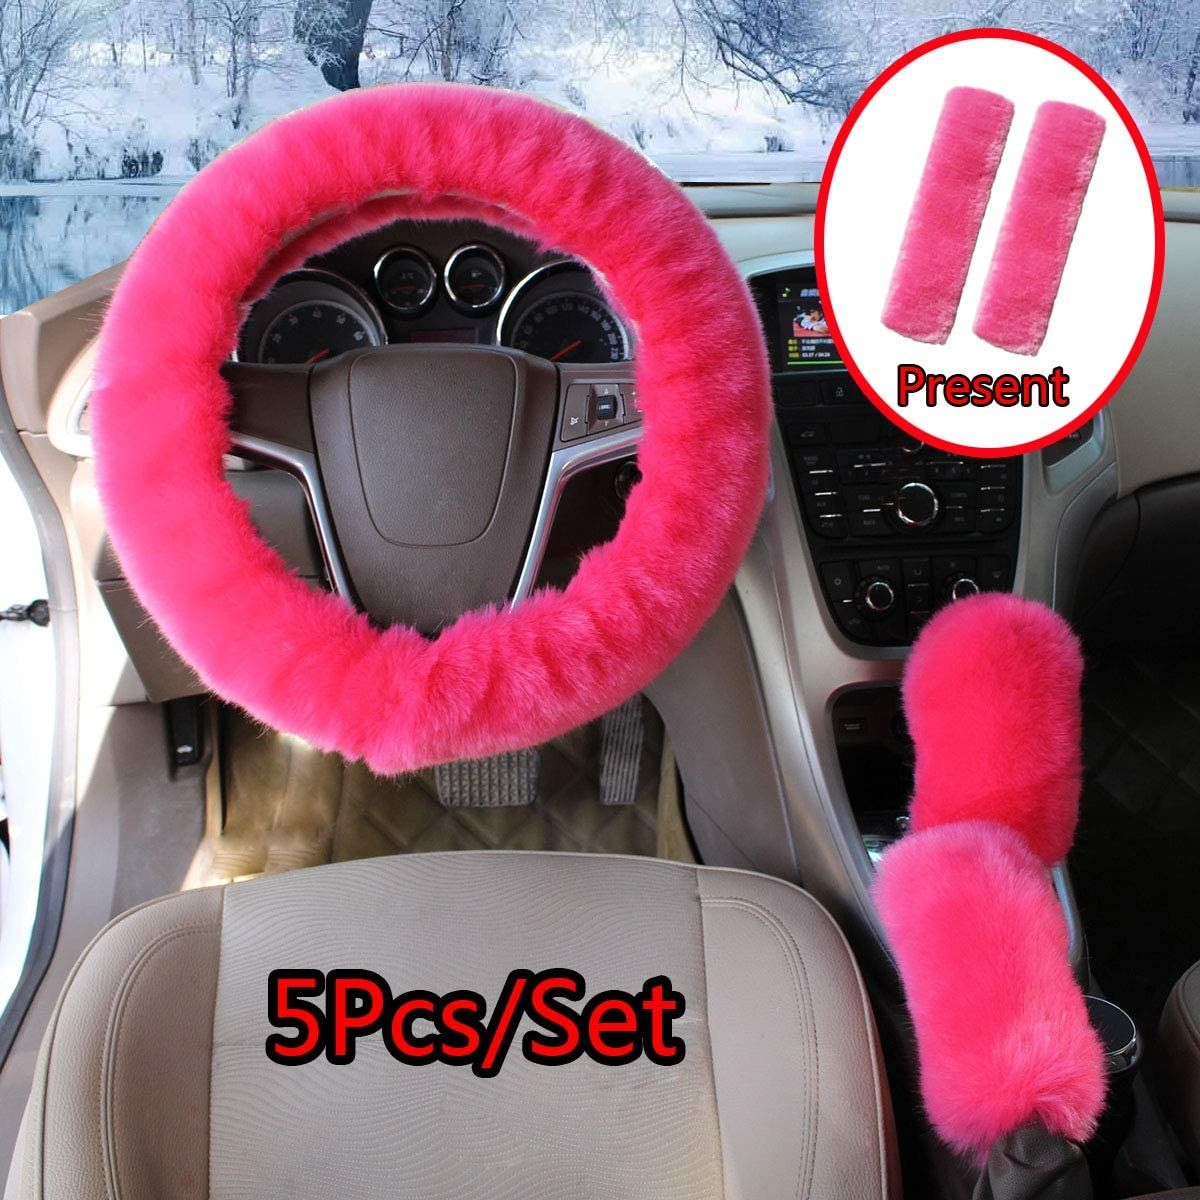 Cxtiy Fluffy Steering Wheel Cover 5 Pcs 1 Set with Handbrake Cover & Gear Shift Cover & Seat Belt Pads Soft and Warm for Car Steering Wheel Protector 15 inch (Hot pink-5pcs)